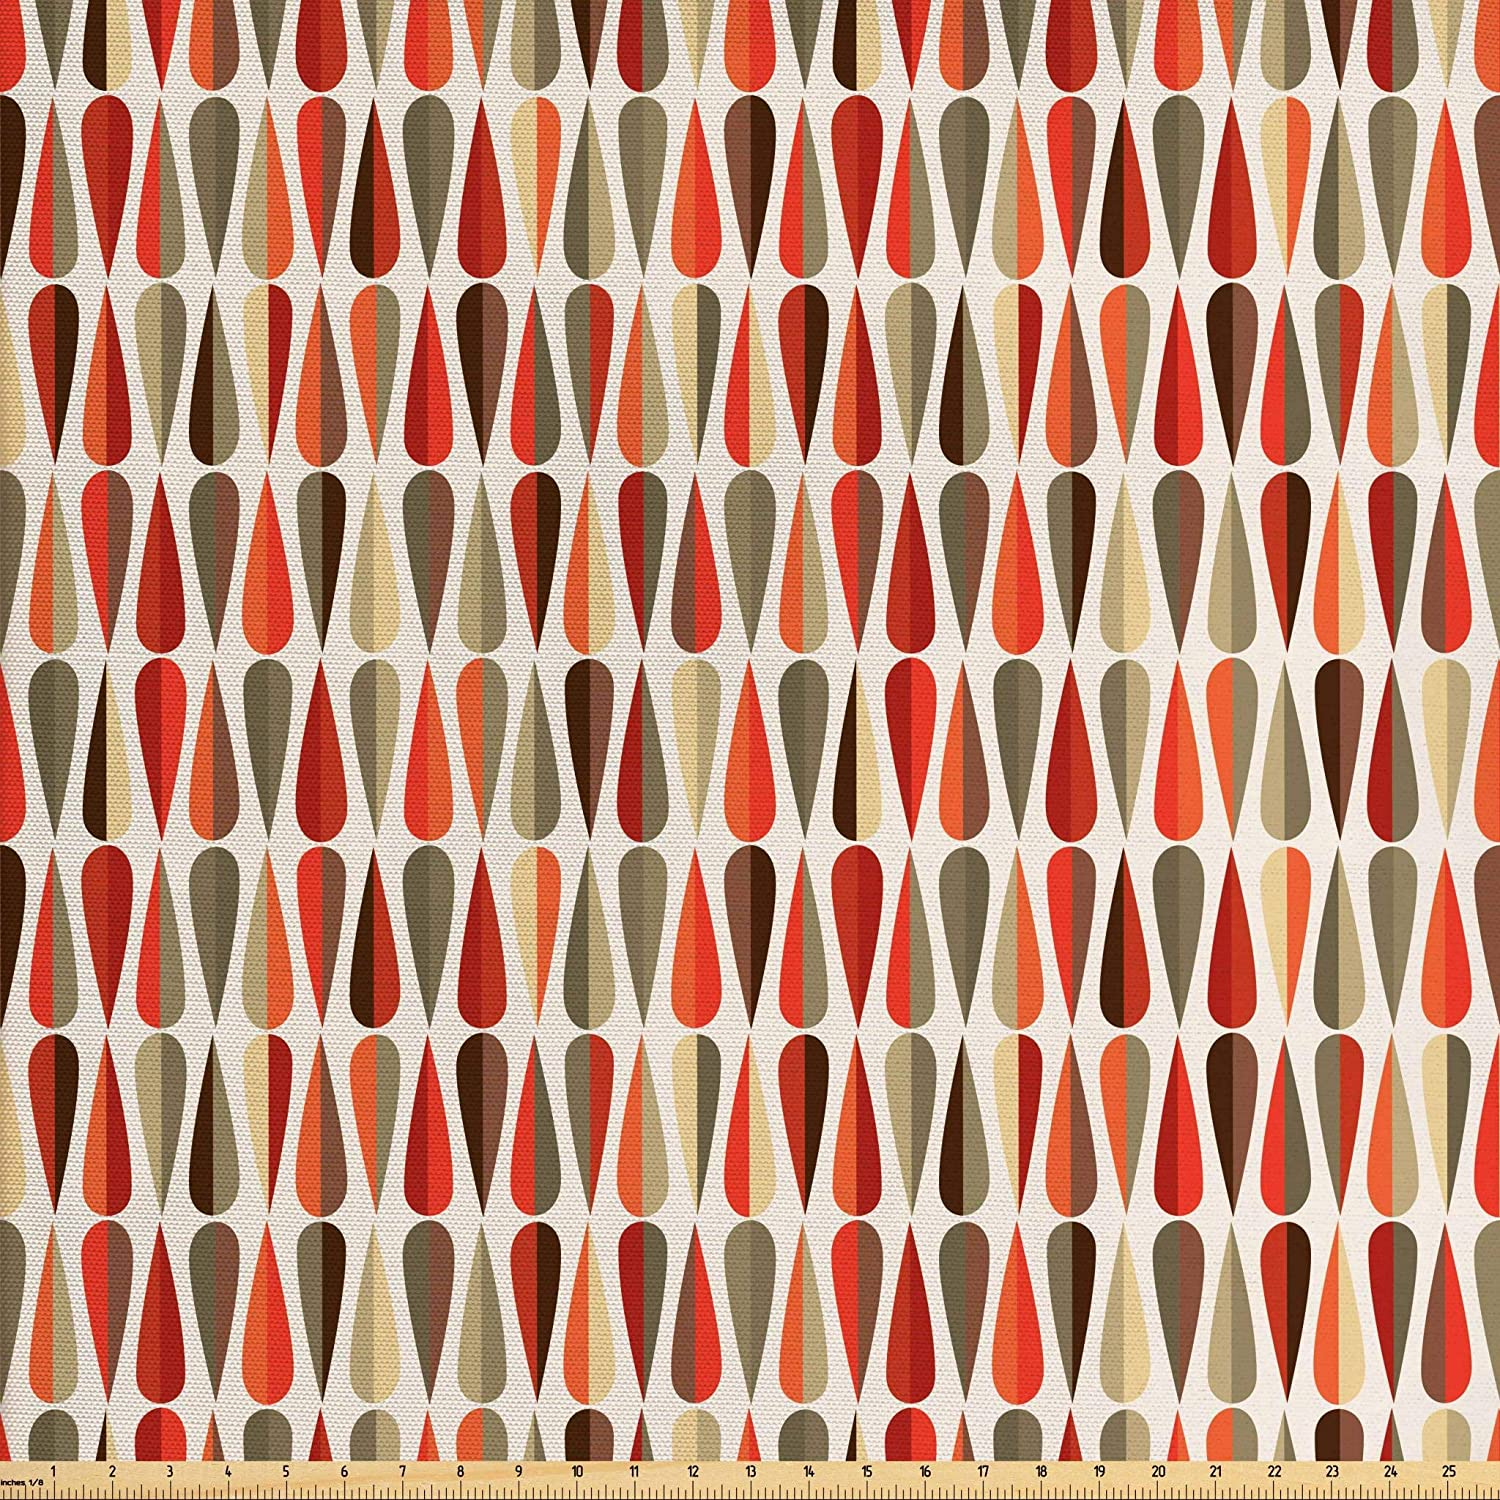 Ambesonne Retro Fabric by The Yard, Sixties and Seventies Style Geometric Round Shaped Design with Warm Colors Print, Decorative Fabric for Upholstery and Home Accents, 2 Yards, Orange Cream